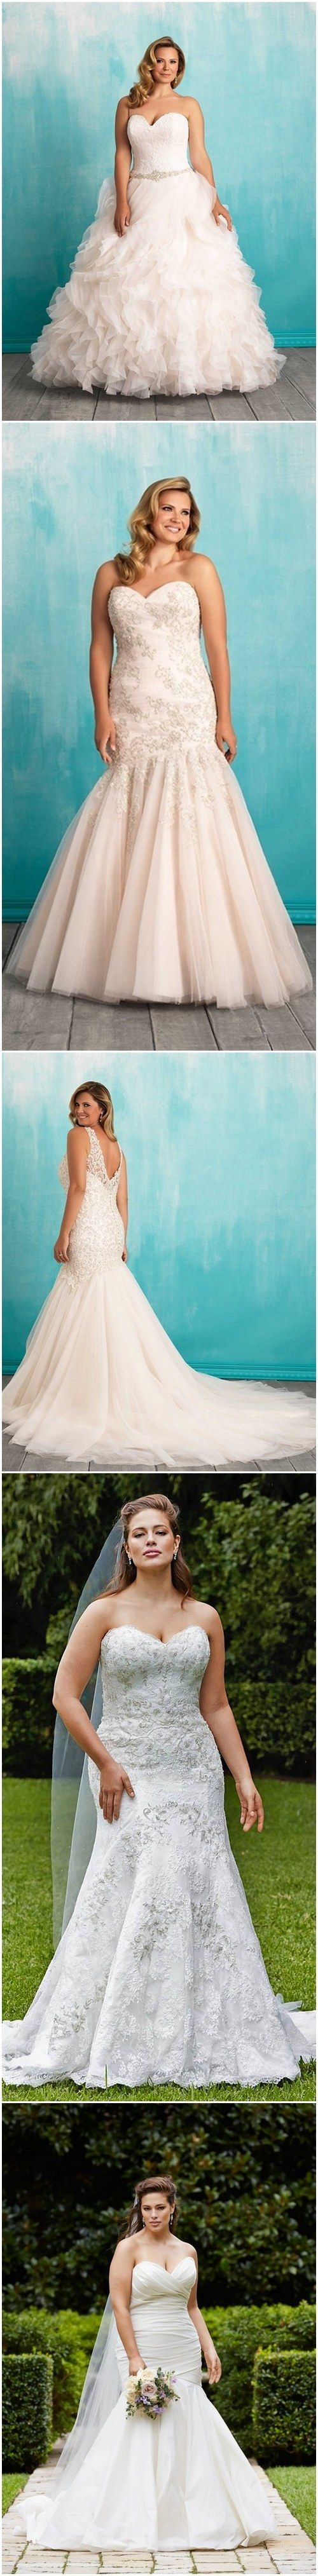 593 best Wedding Dresses images on Pinterest | Wedding dressses ...